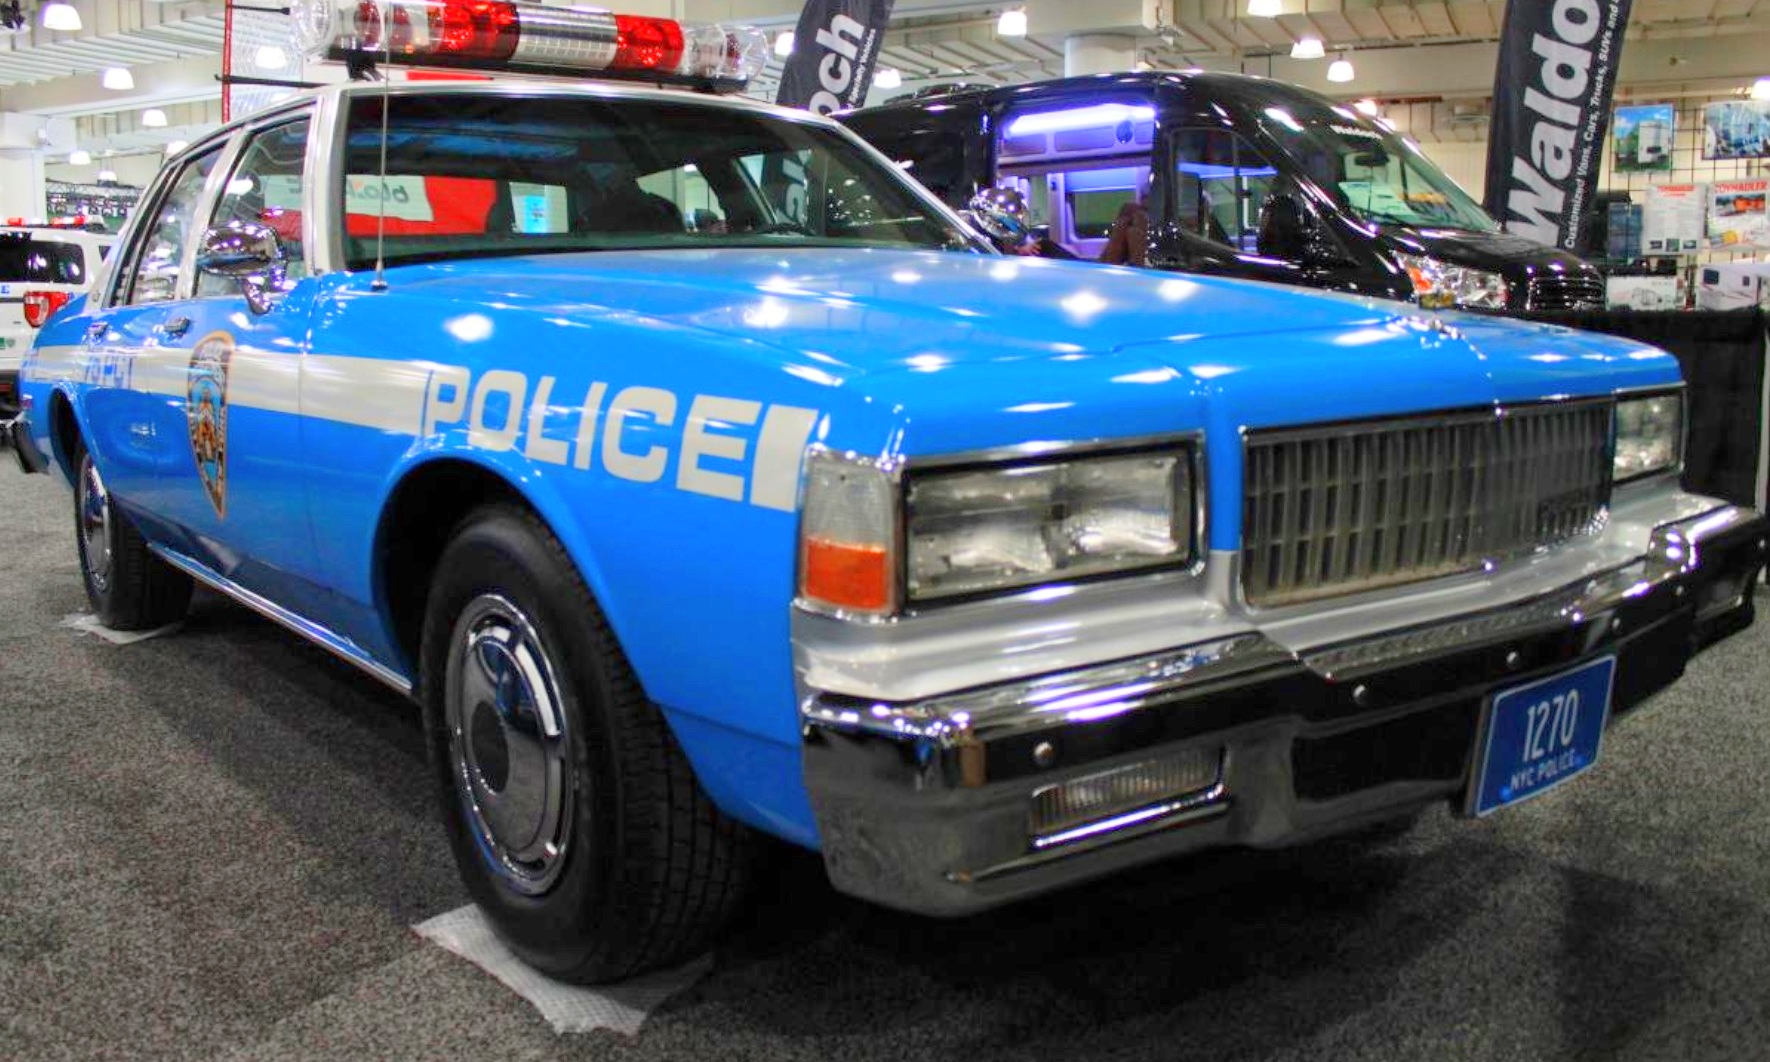 1989 CHEVROLET CAPRICE –  This '89 Chevrolet Caprice is dedicated to fallen NYPD Officer Edward Byrne who was killed in the line of duty in 1988 when two men shot him while he was sitting in a similar patrol car in South Jamaica, Queens.